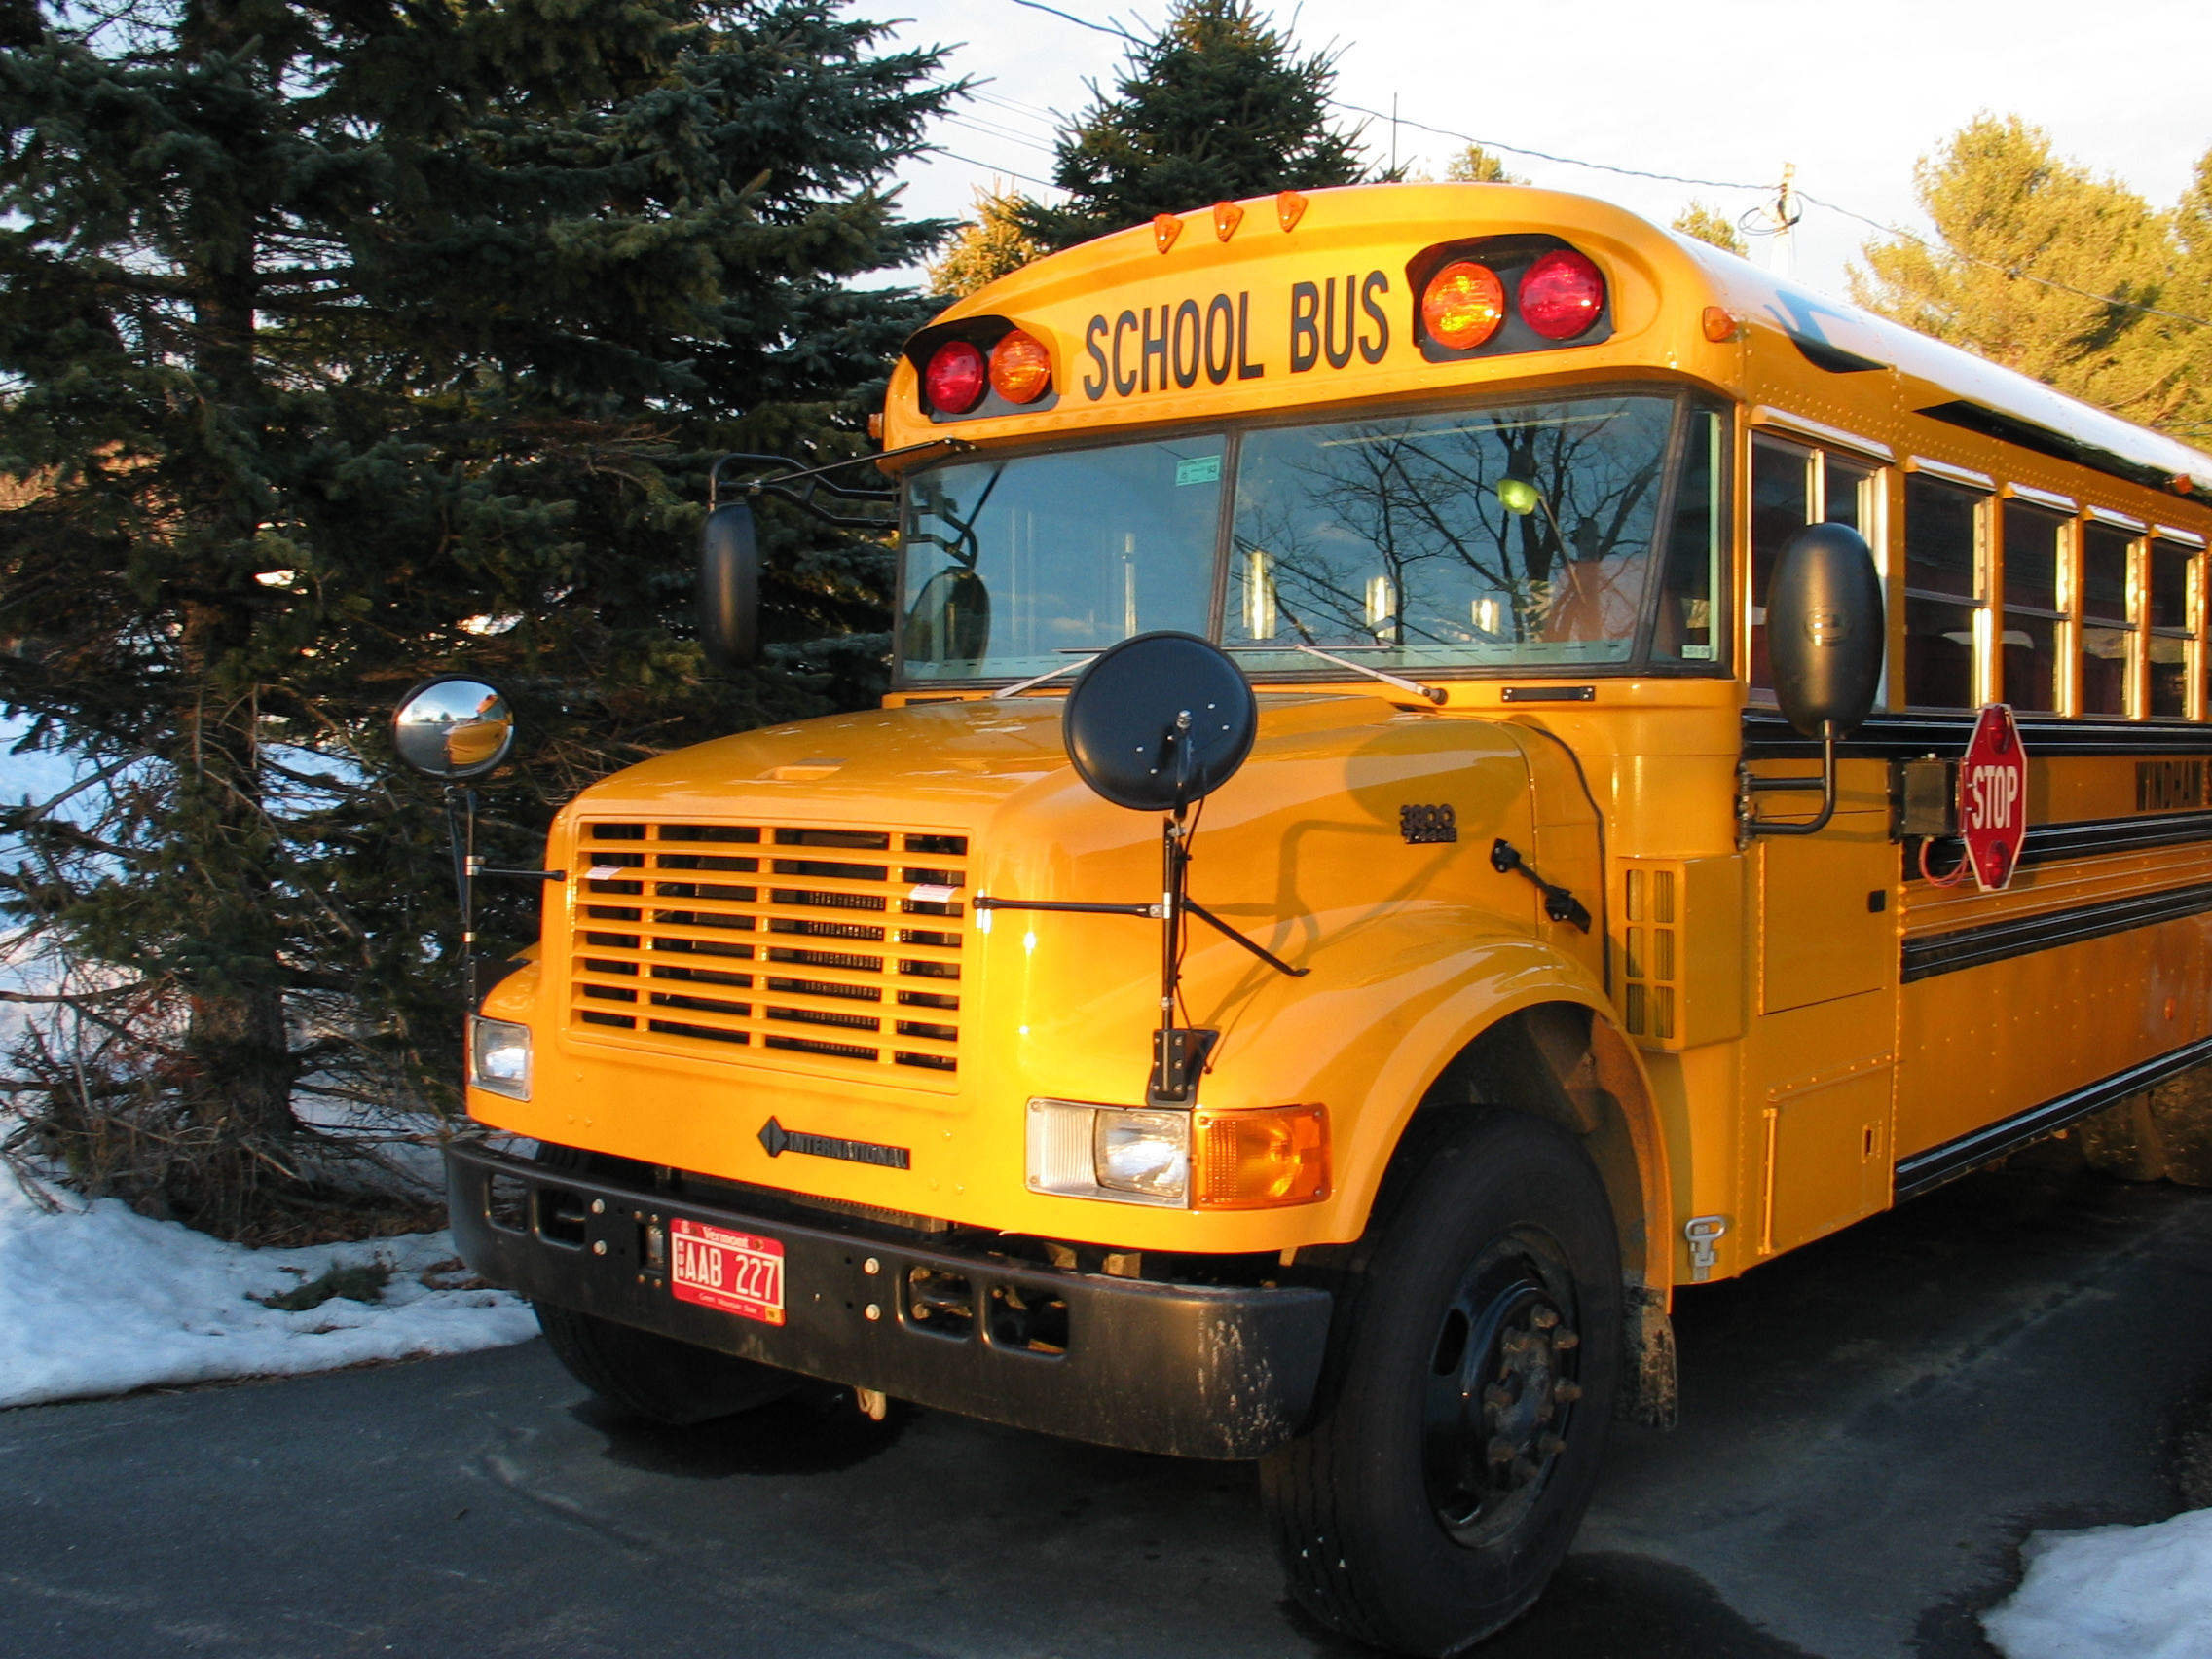 662421bf50 File School bus zoom in front.jpg - Wikimedia Commons